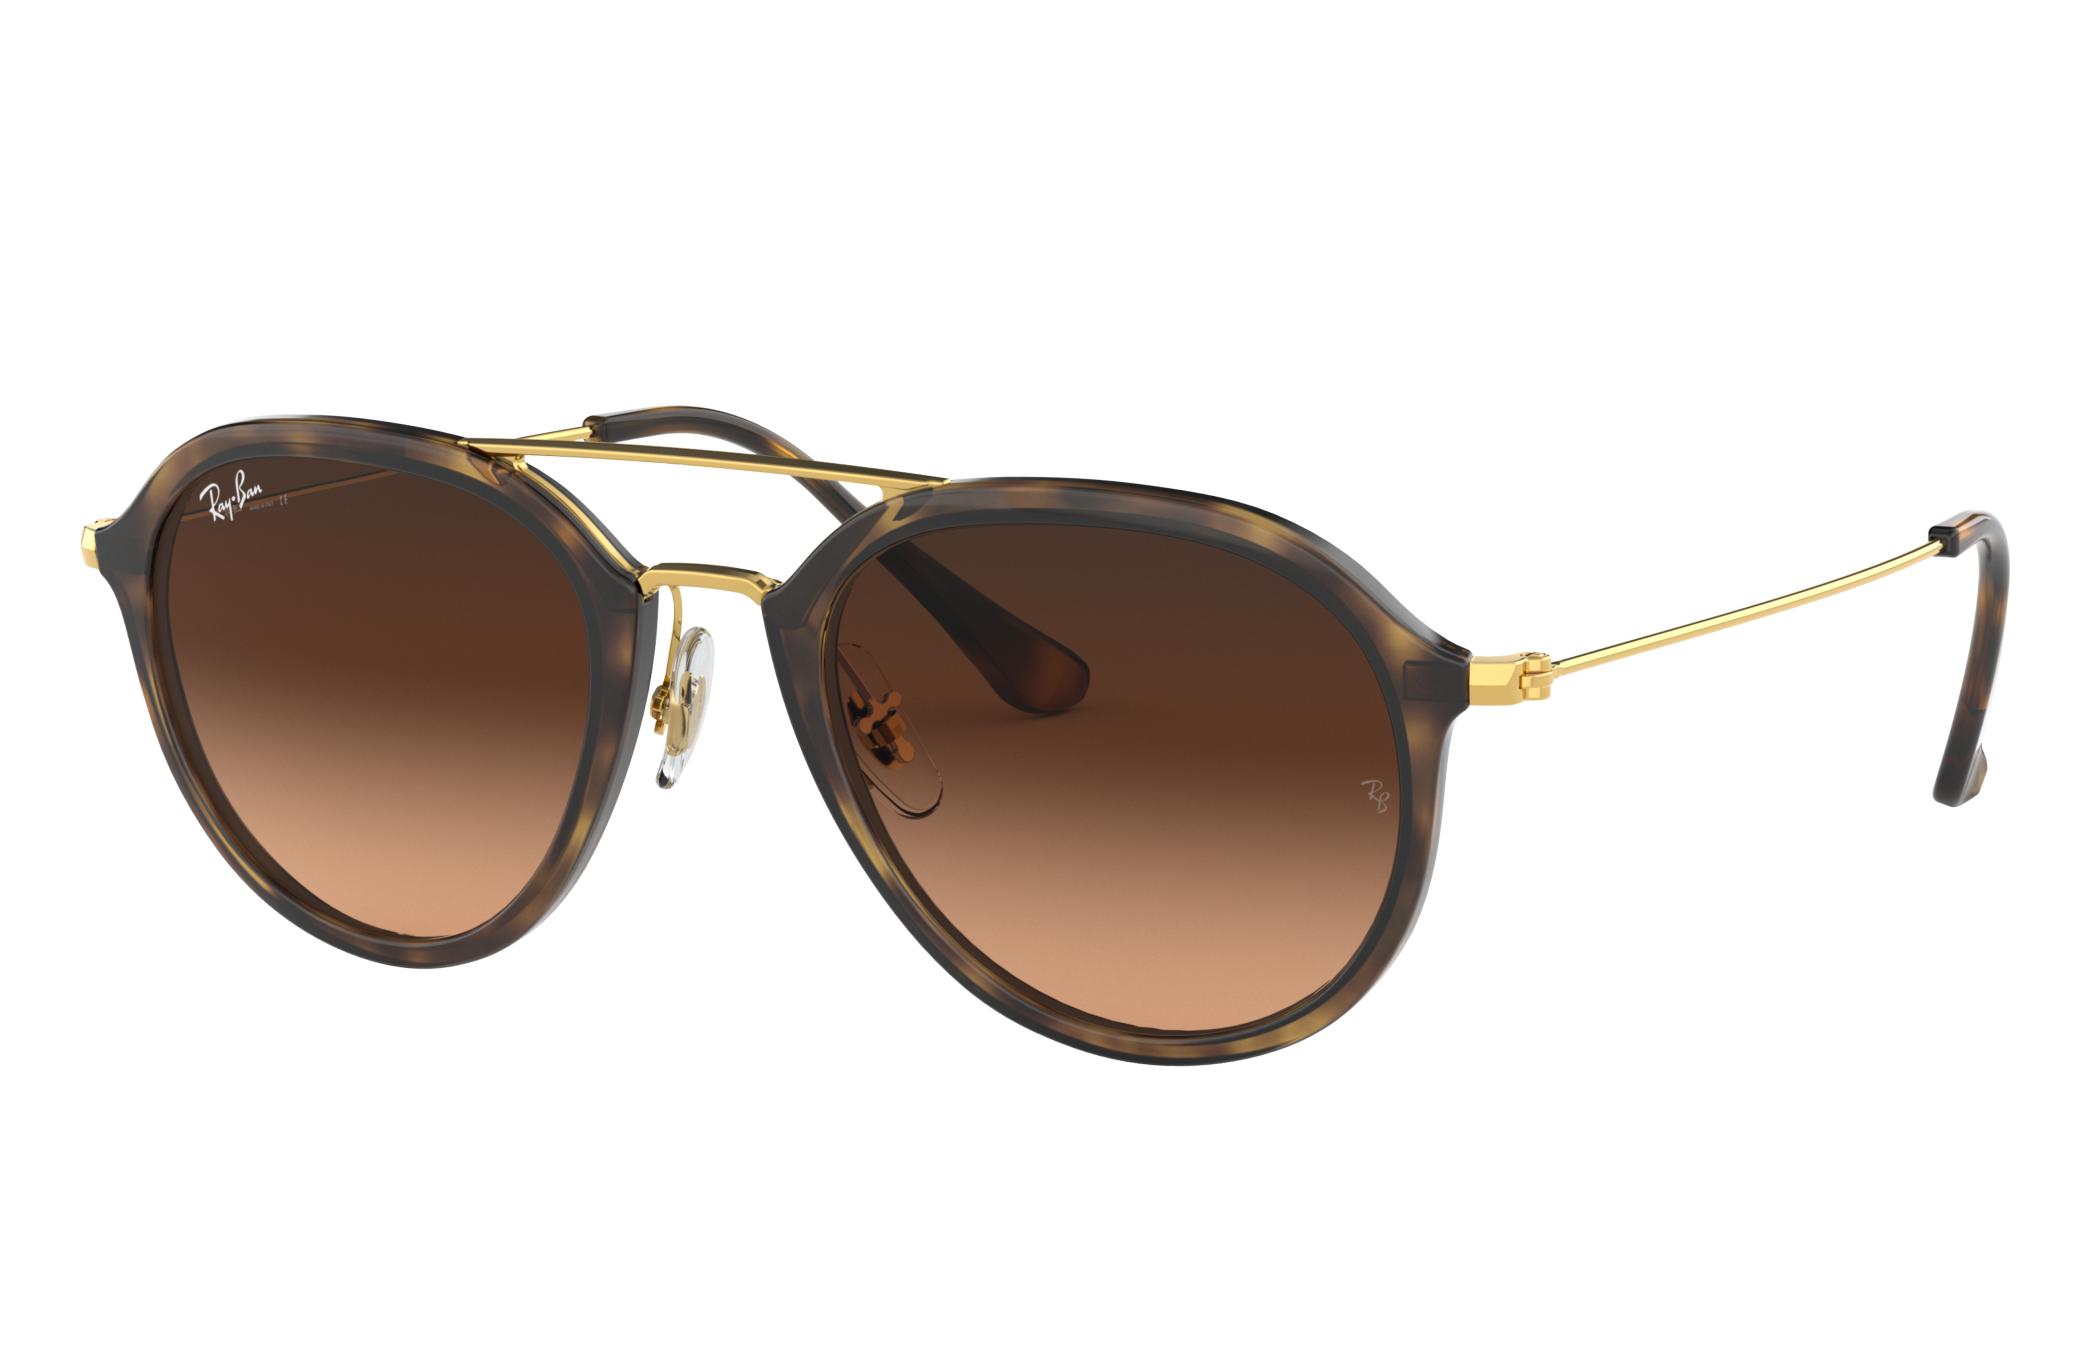 Ray-Ban Rb4253 Gold, Pink Lenses - RB4253